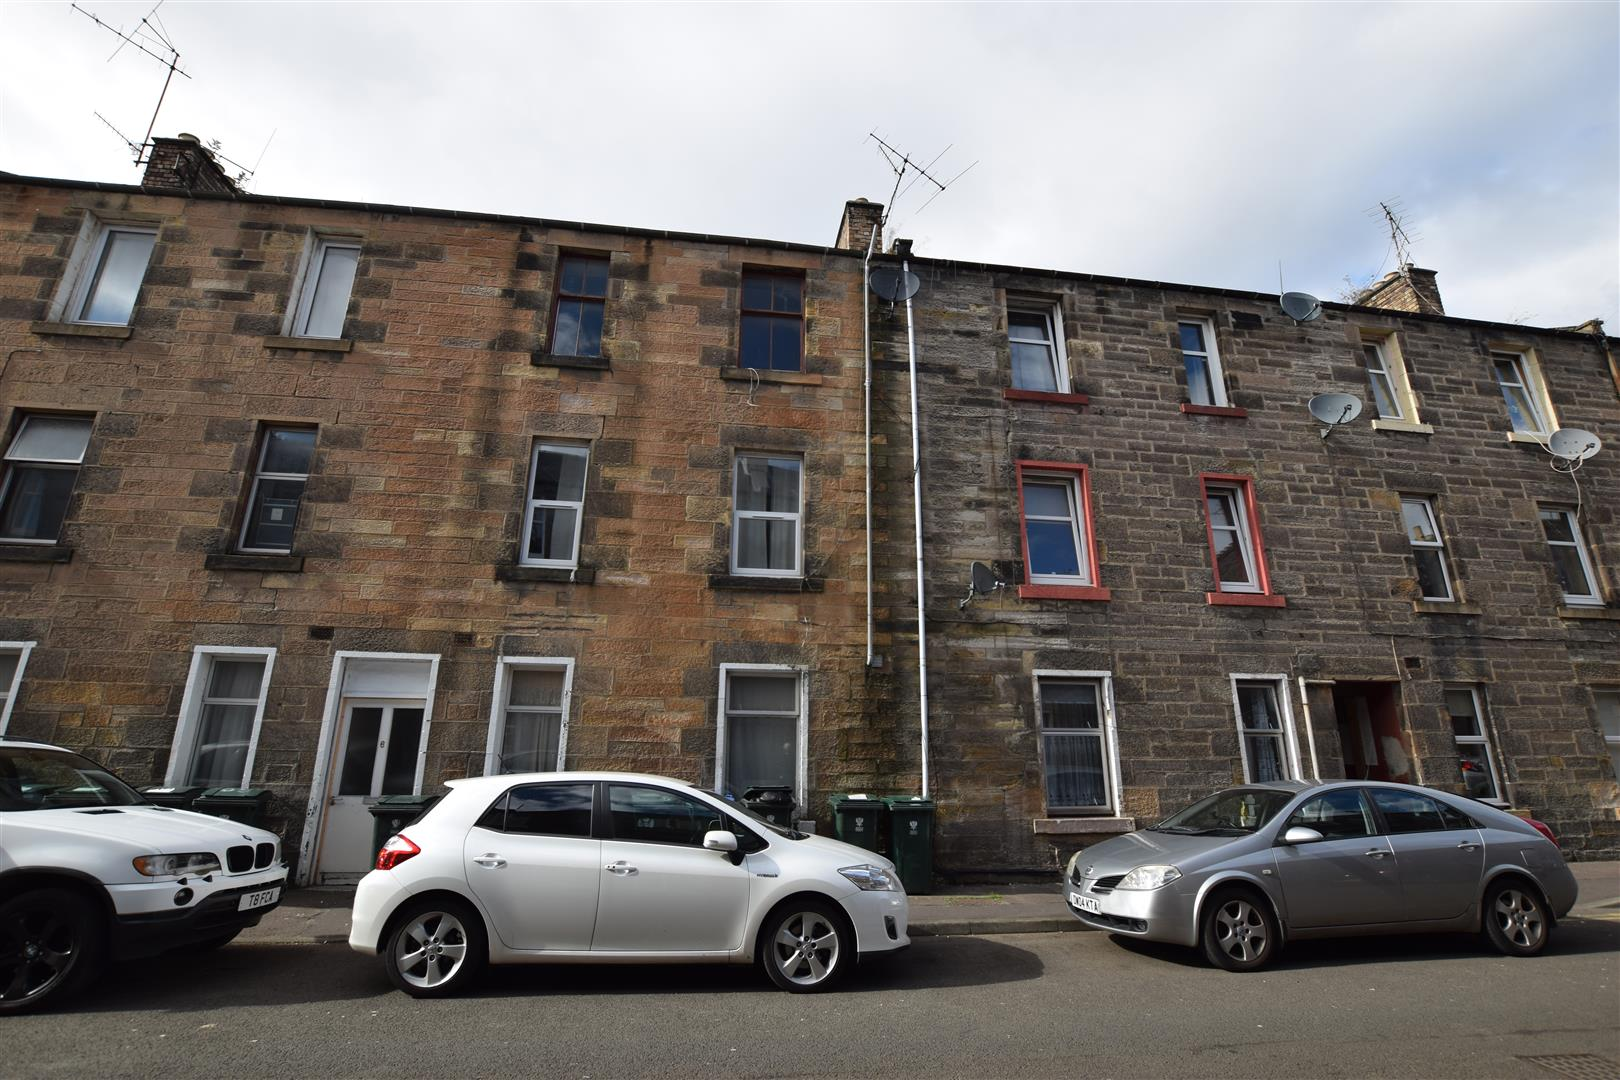 2/5, 4, Inchaffray Street, Perth, Perthshire, PH1 5RX, UK